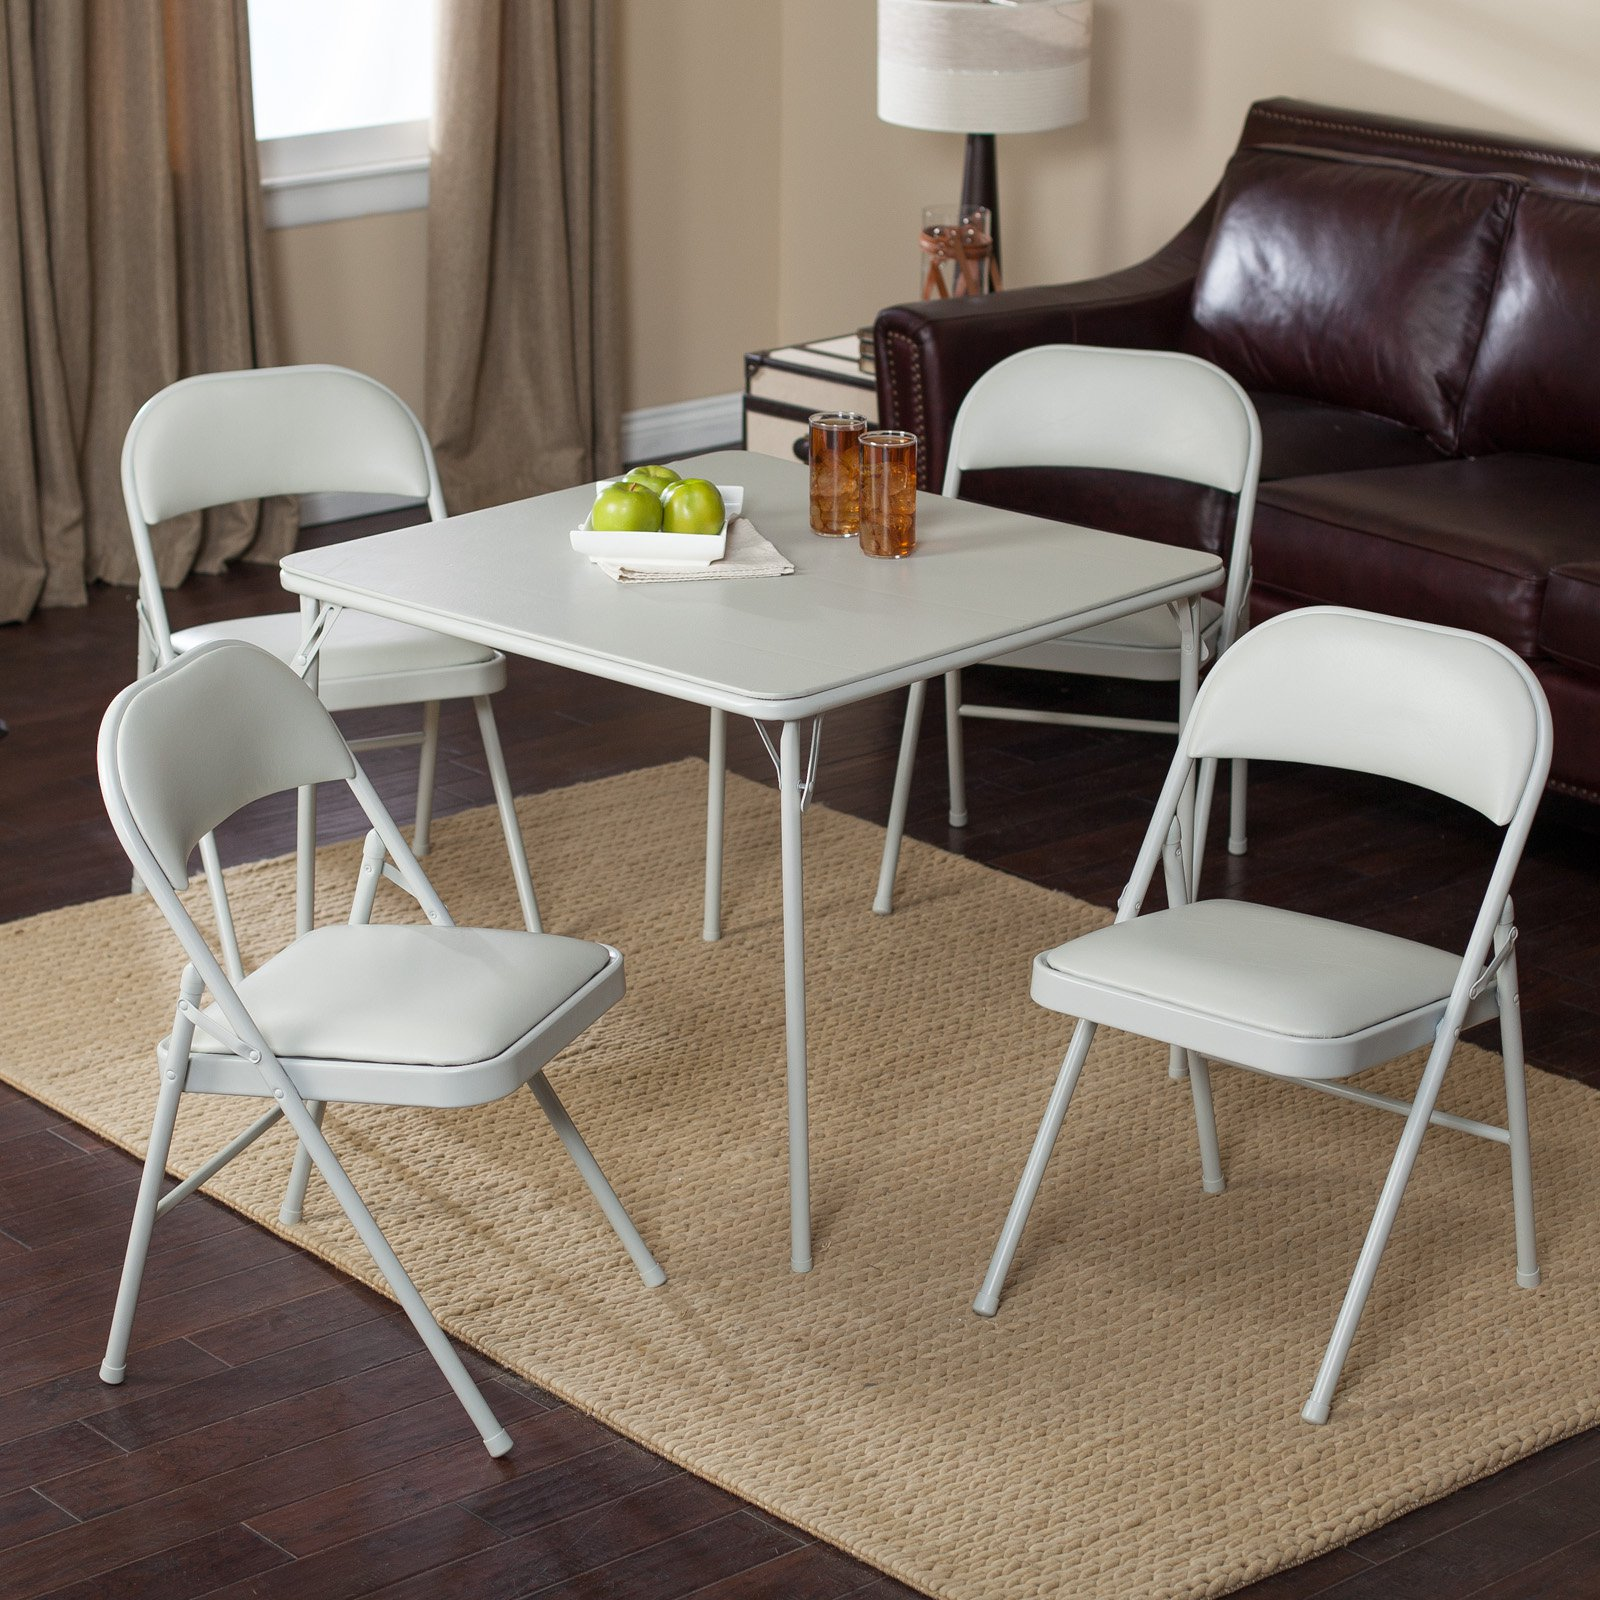 Meco Sudden Comfort Deluxe Double Padded Chair and Back - 5 Piece ...